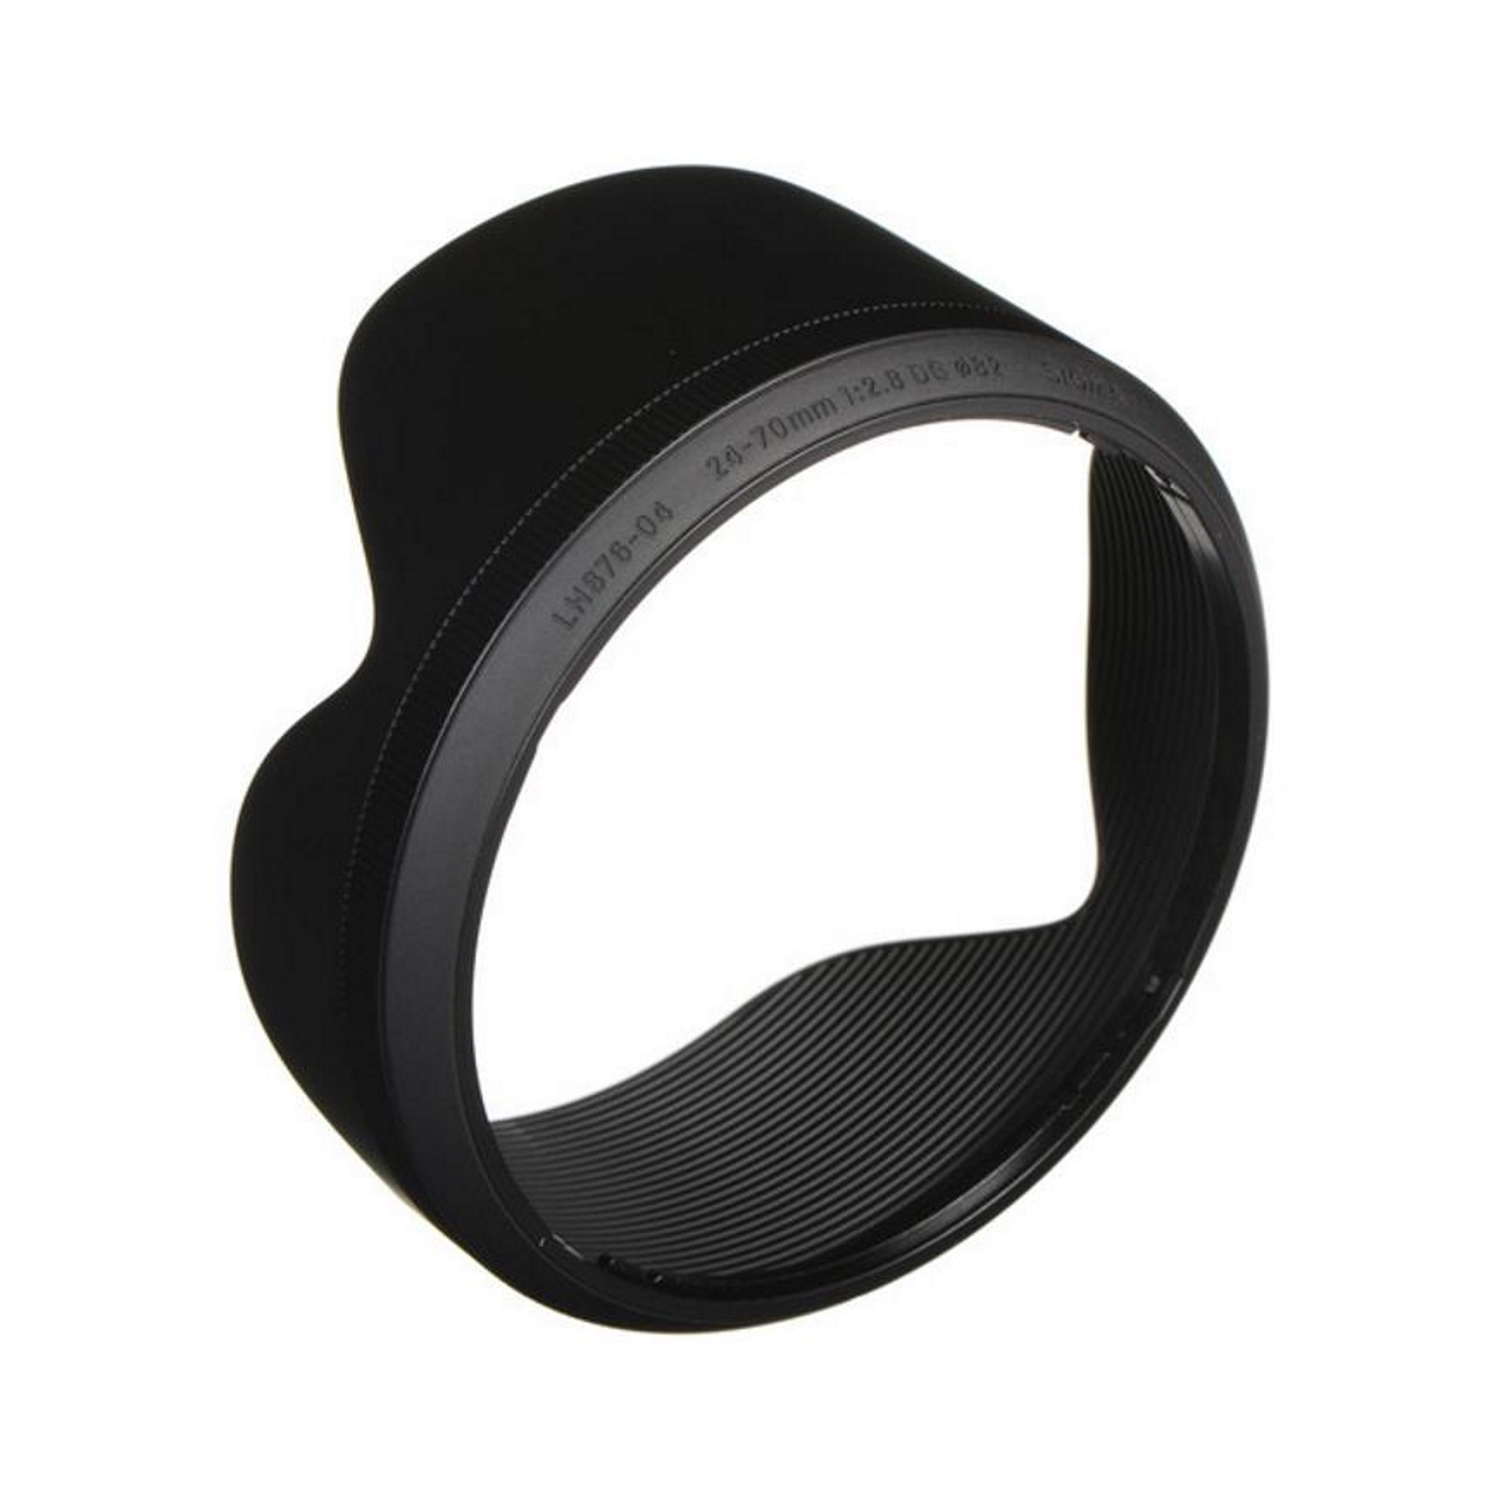 Sigma LH876-04 Lens Hood for 24-70mm f/2.8 DG OS HSM Art